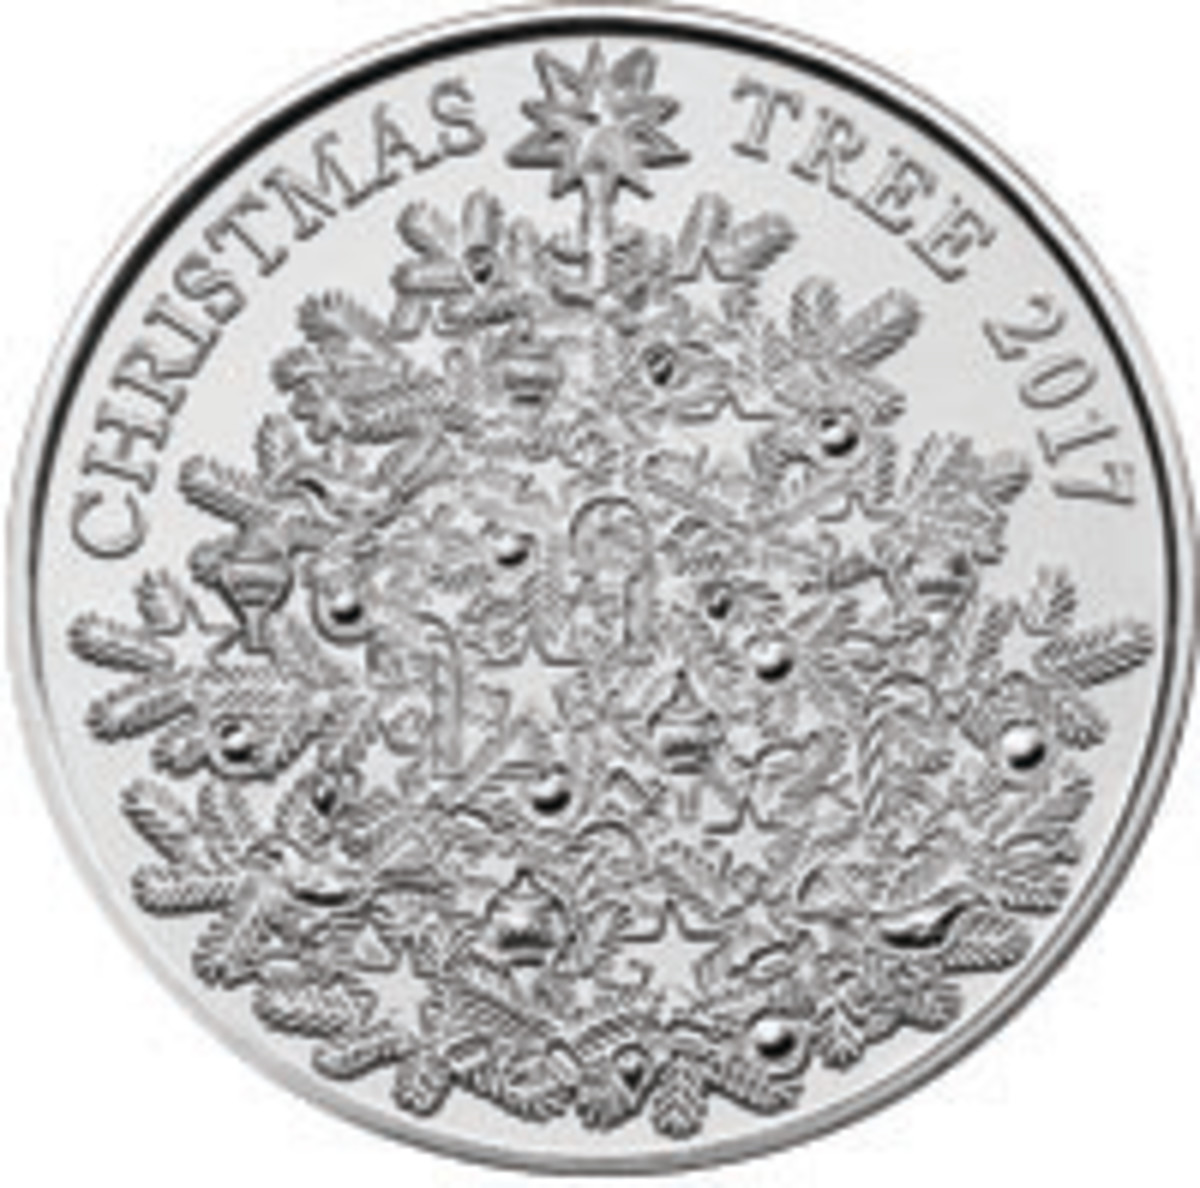 Reverse of Britain's Royal cupronickel seasonal £5 with Christmas tree. (Image courtesy & © Royal Mint)